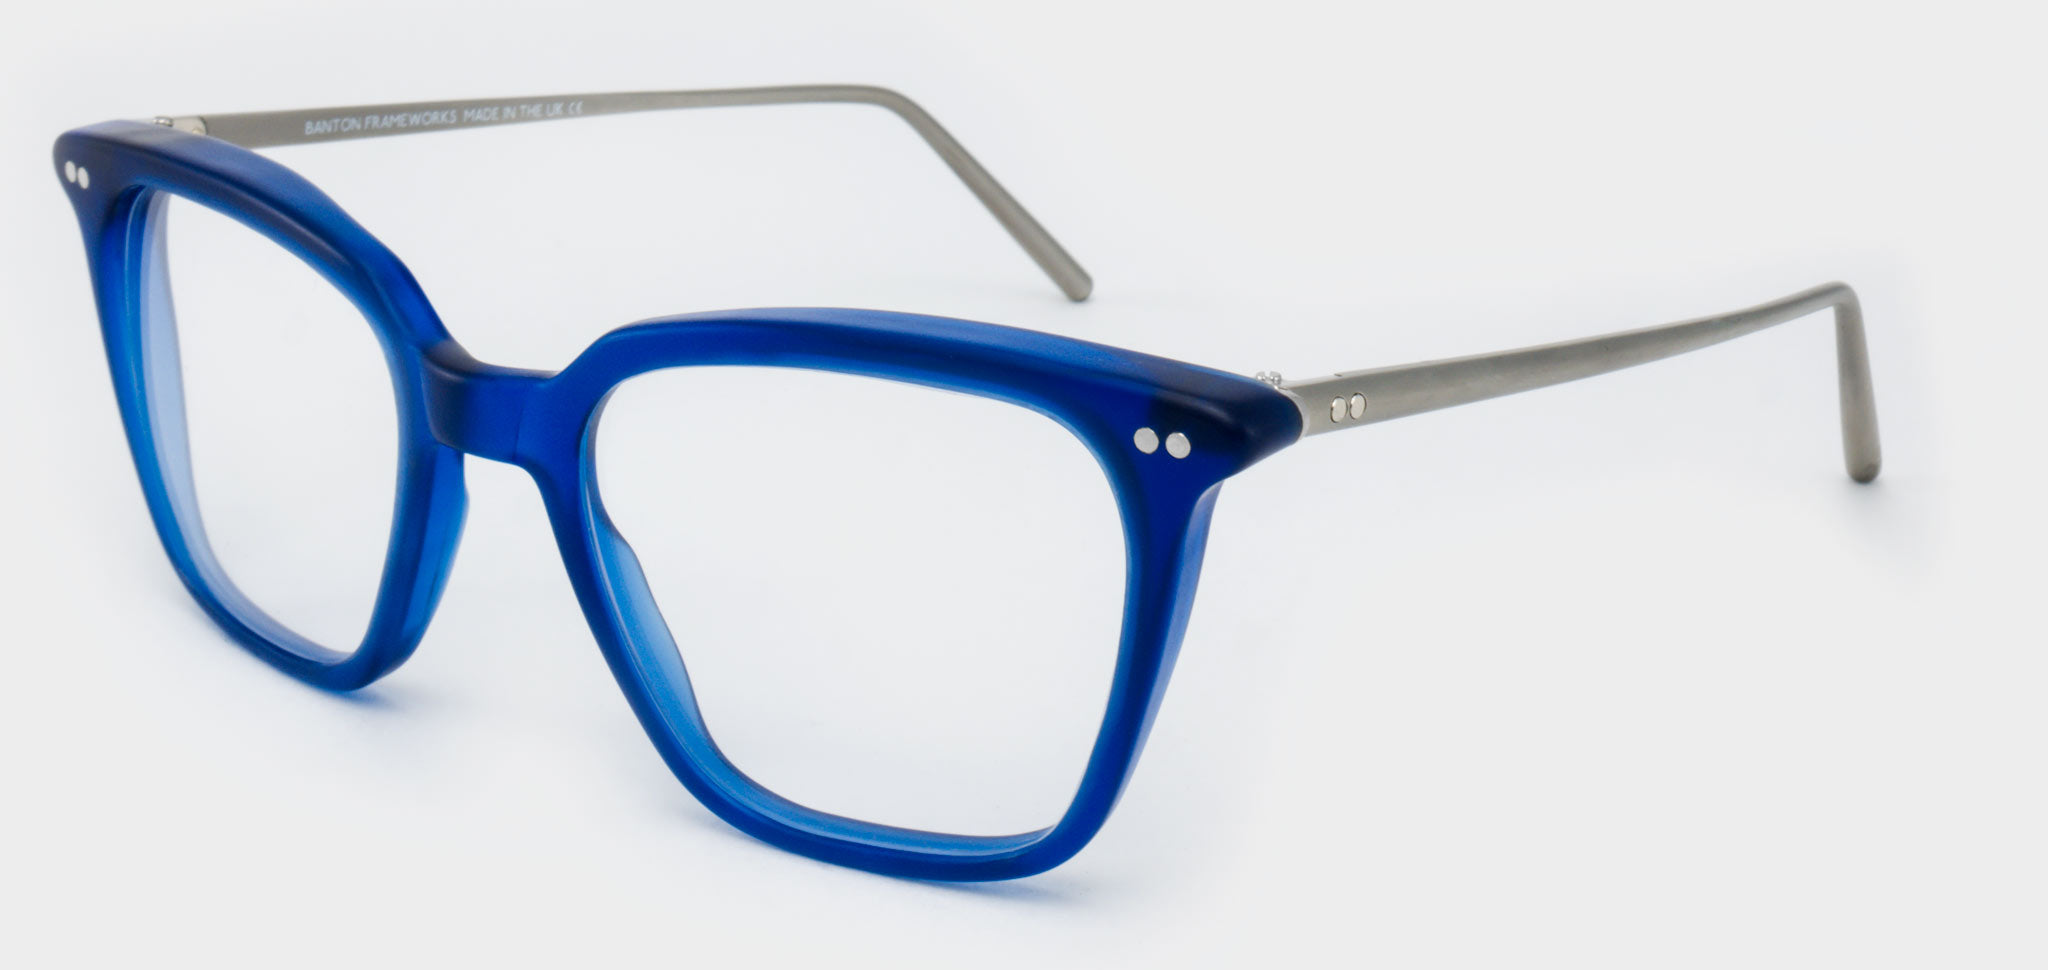 UK made glasses for men